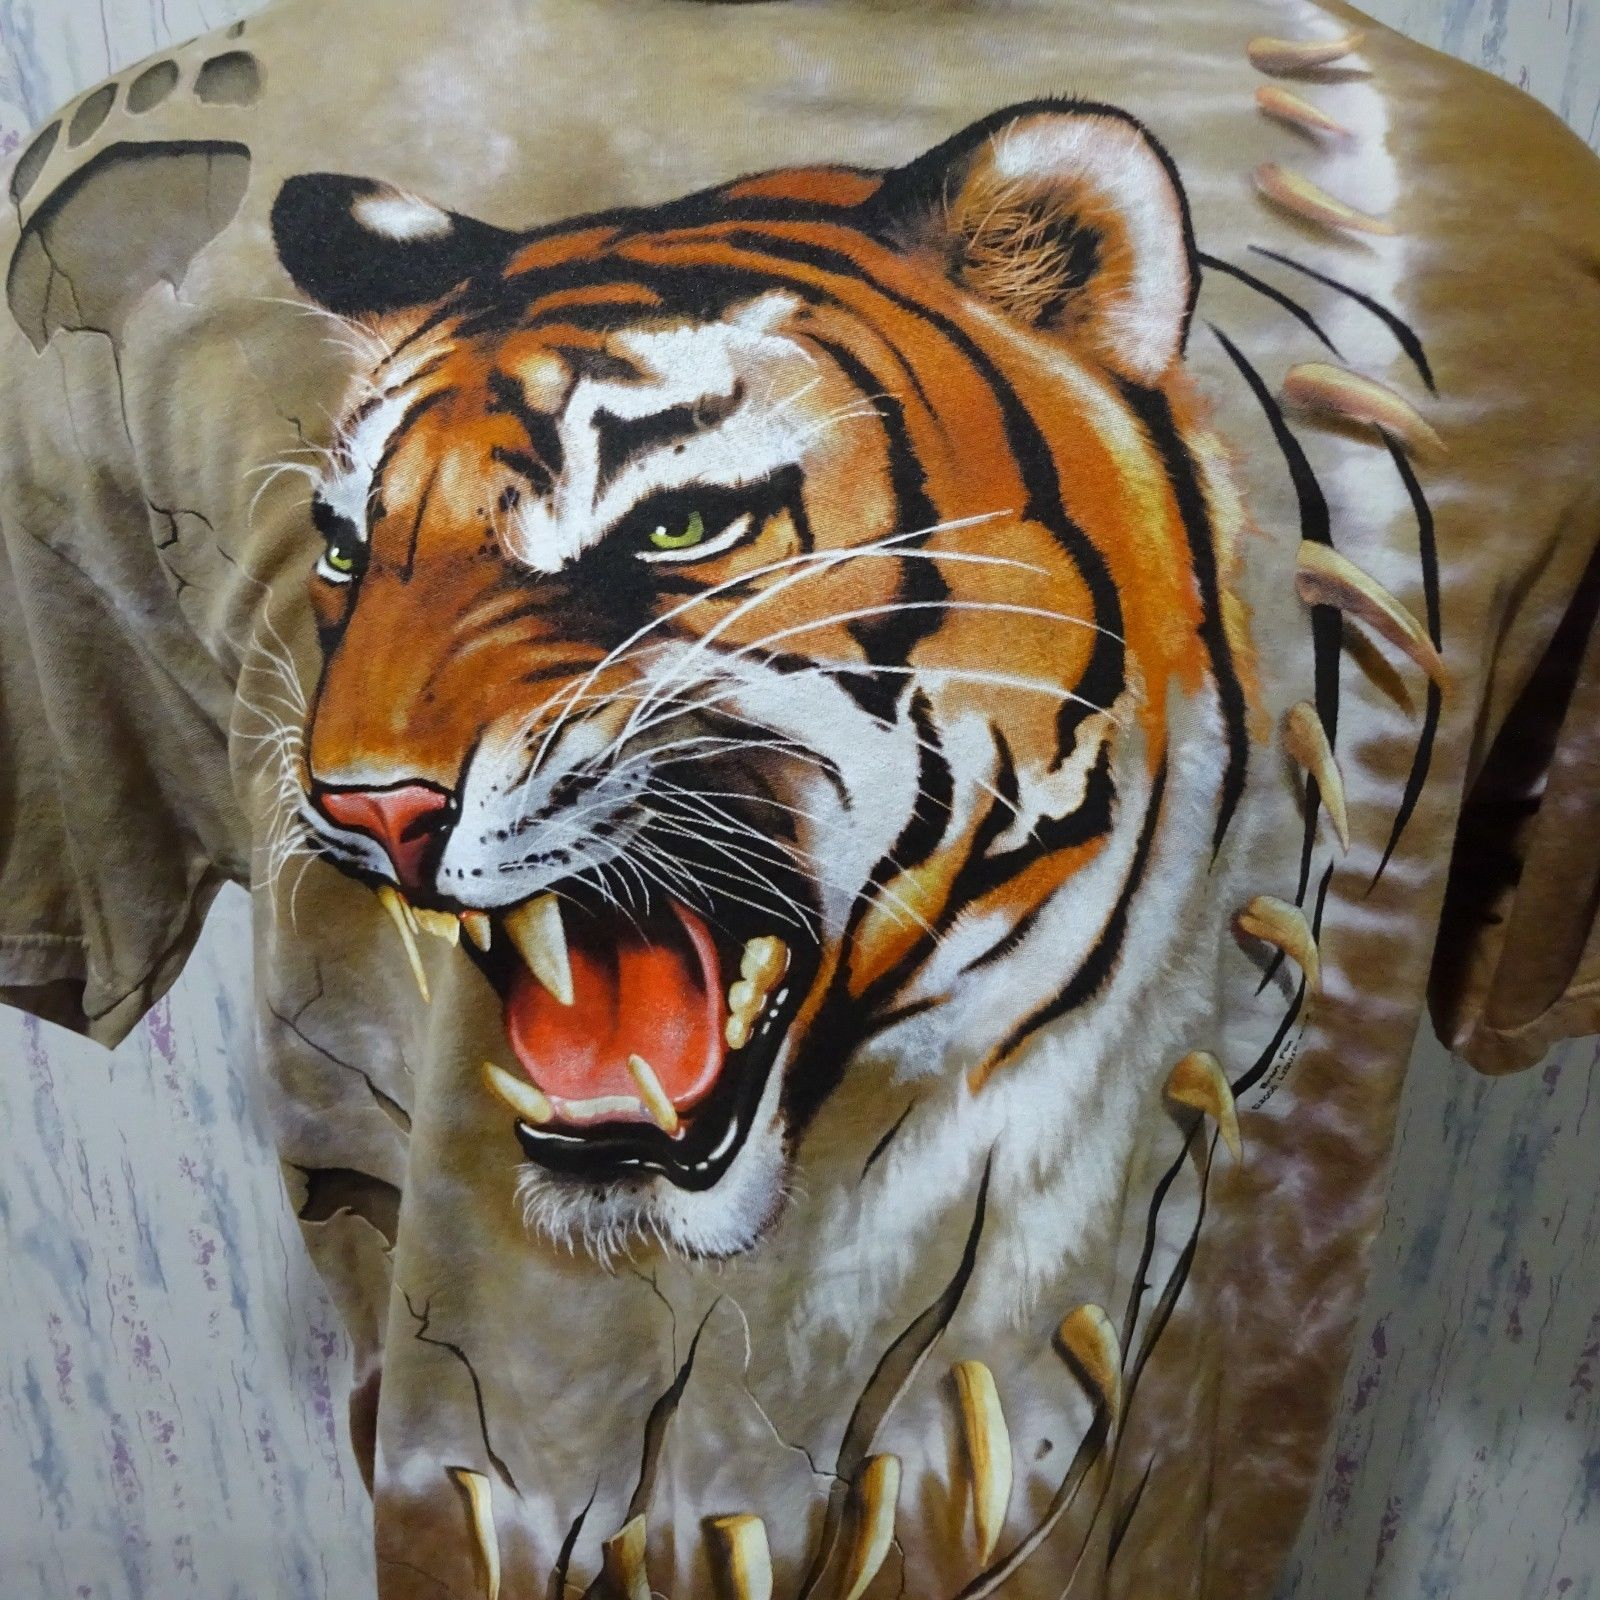 Primary image for  Liquid Blue 2000 Tan Double Sided Tiger All Over Mens Graphic T Shirt XL